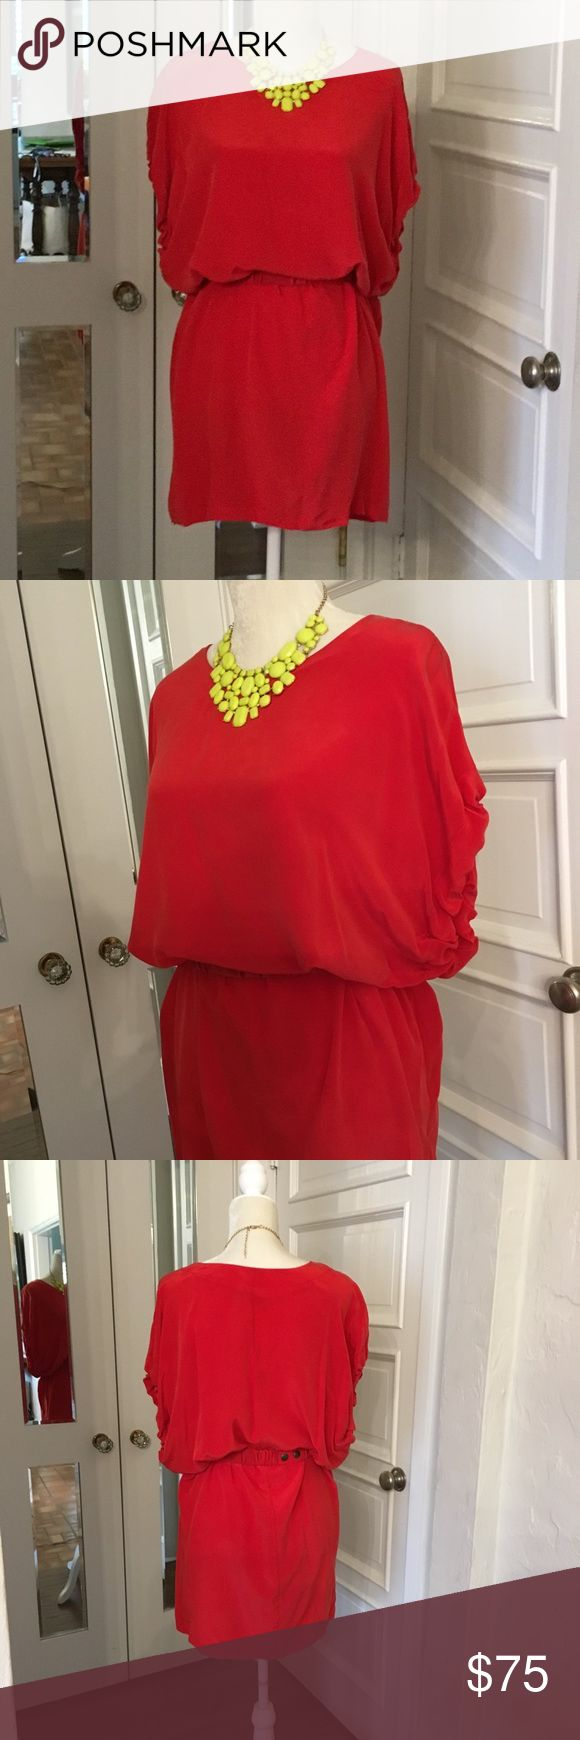 Toupy Paris Red Silk Dress Gorgeous NWOT red silk dress from Saks Off5th. Hand washable. Never worn. Can be worn with matching belt to cinch waist or without. Dolman short sleeves. Nonsmoking household; excellent condition. Toupy Paris Dresses Mini